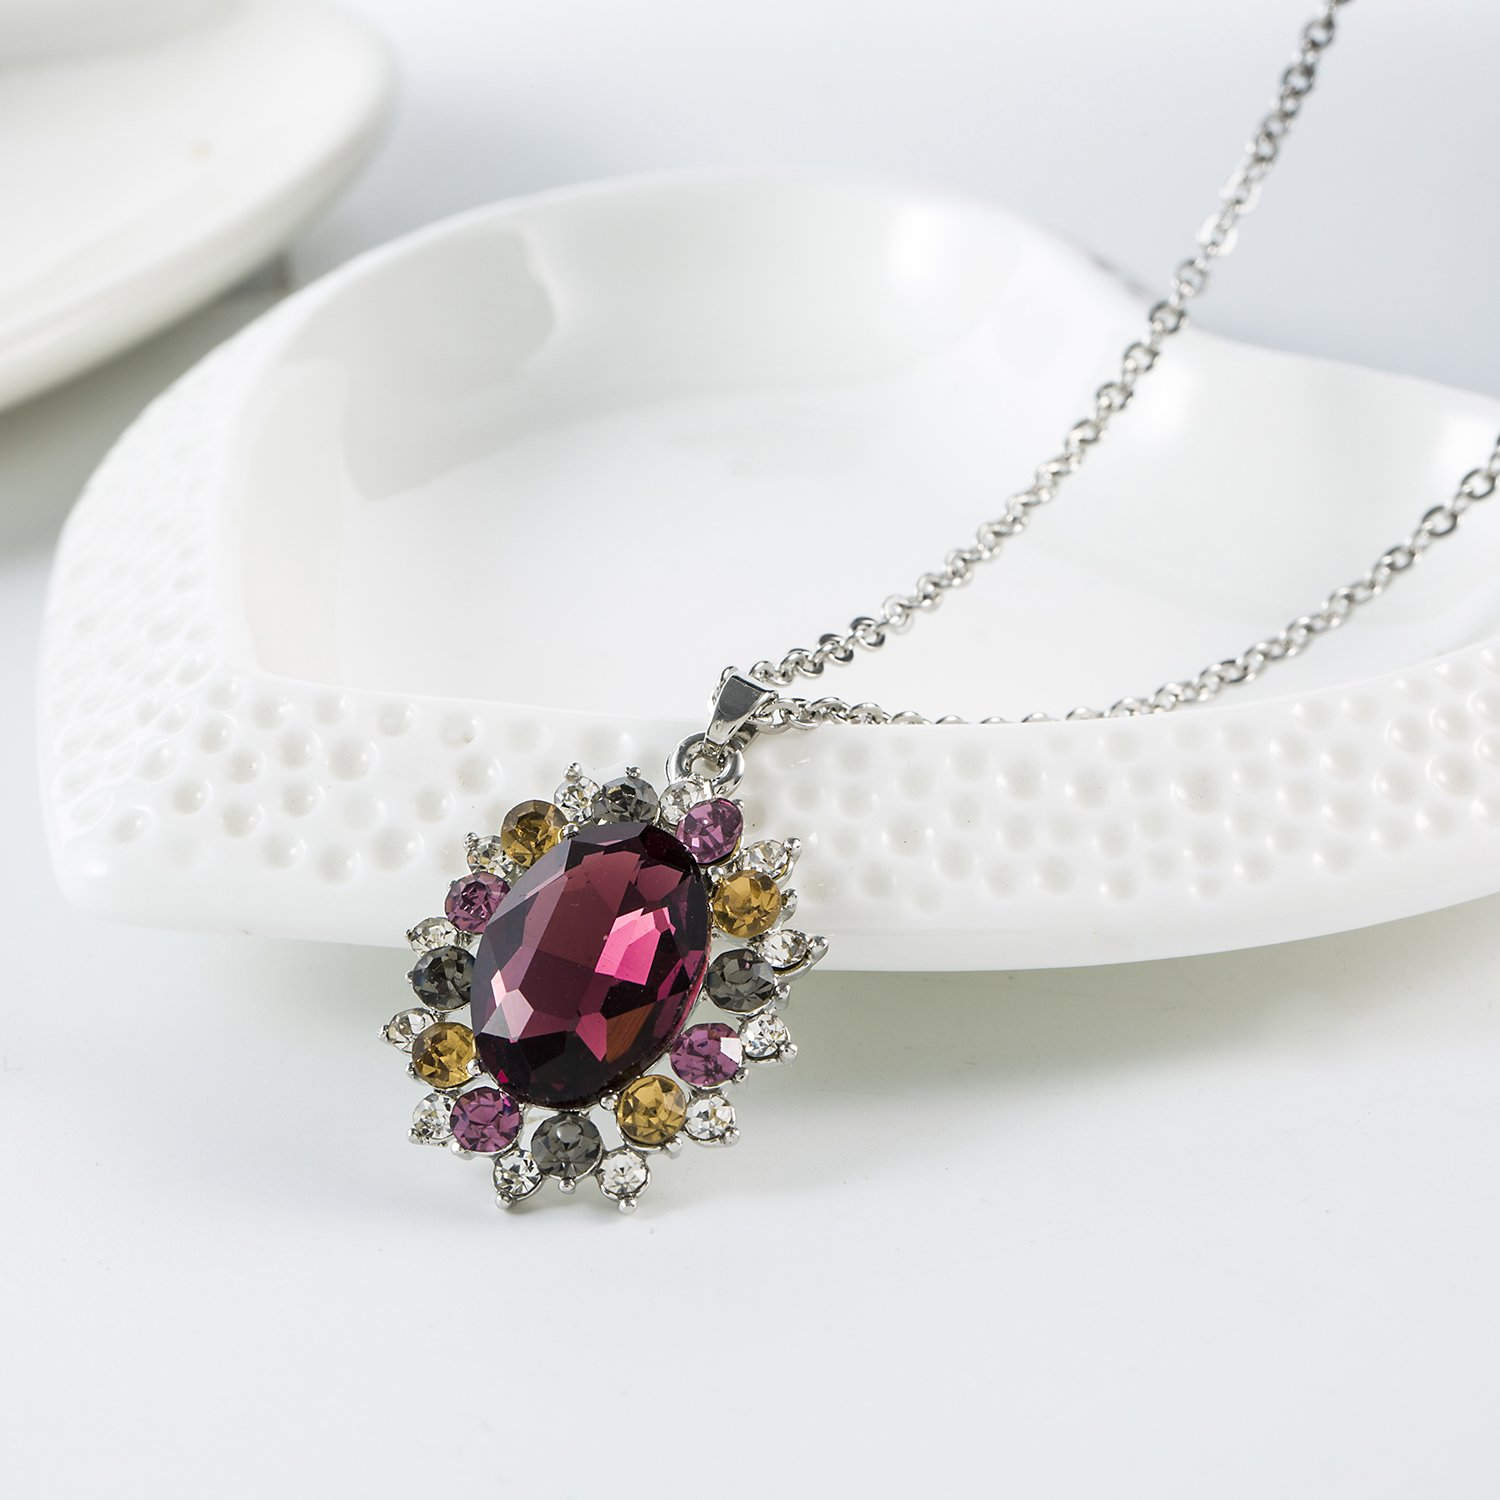 Necklaces for Women Round Cubic Zirconia Halo Pendant Necklace with 316L Stainless Steel Chain